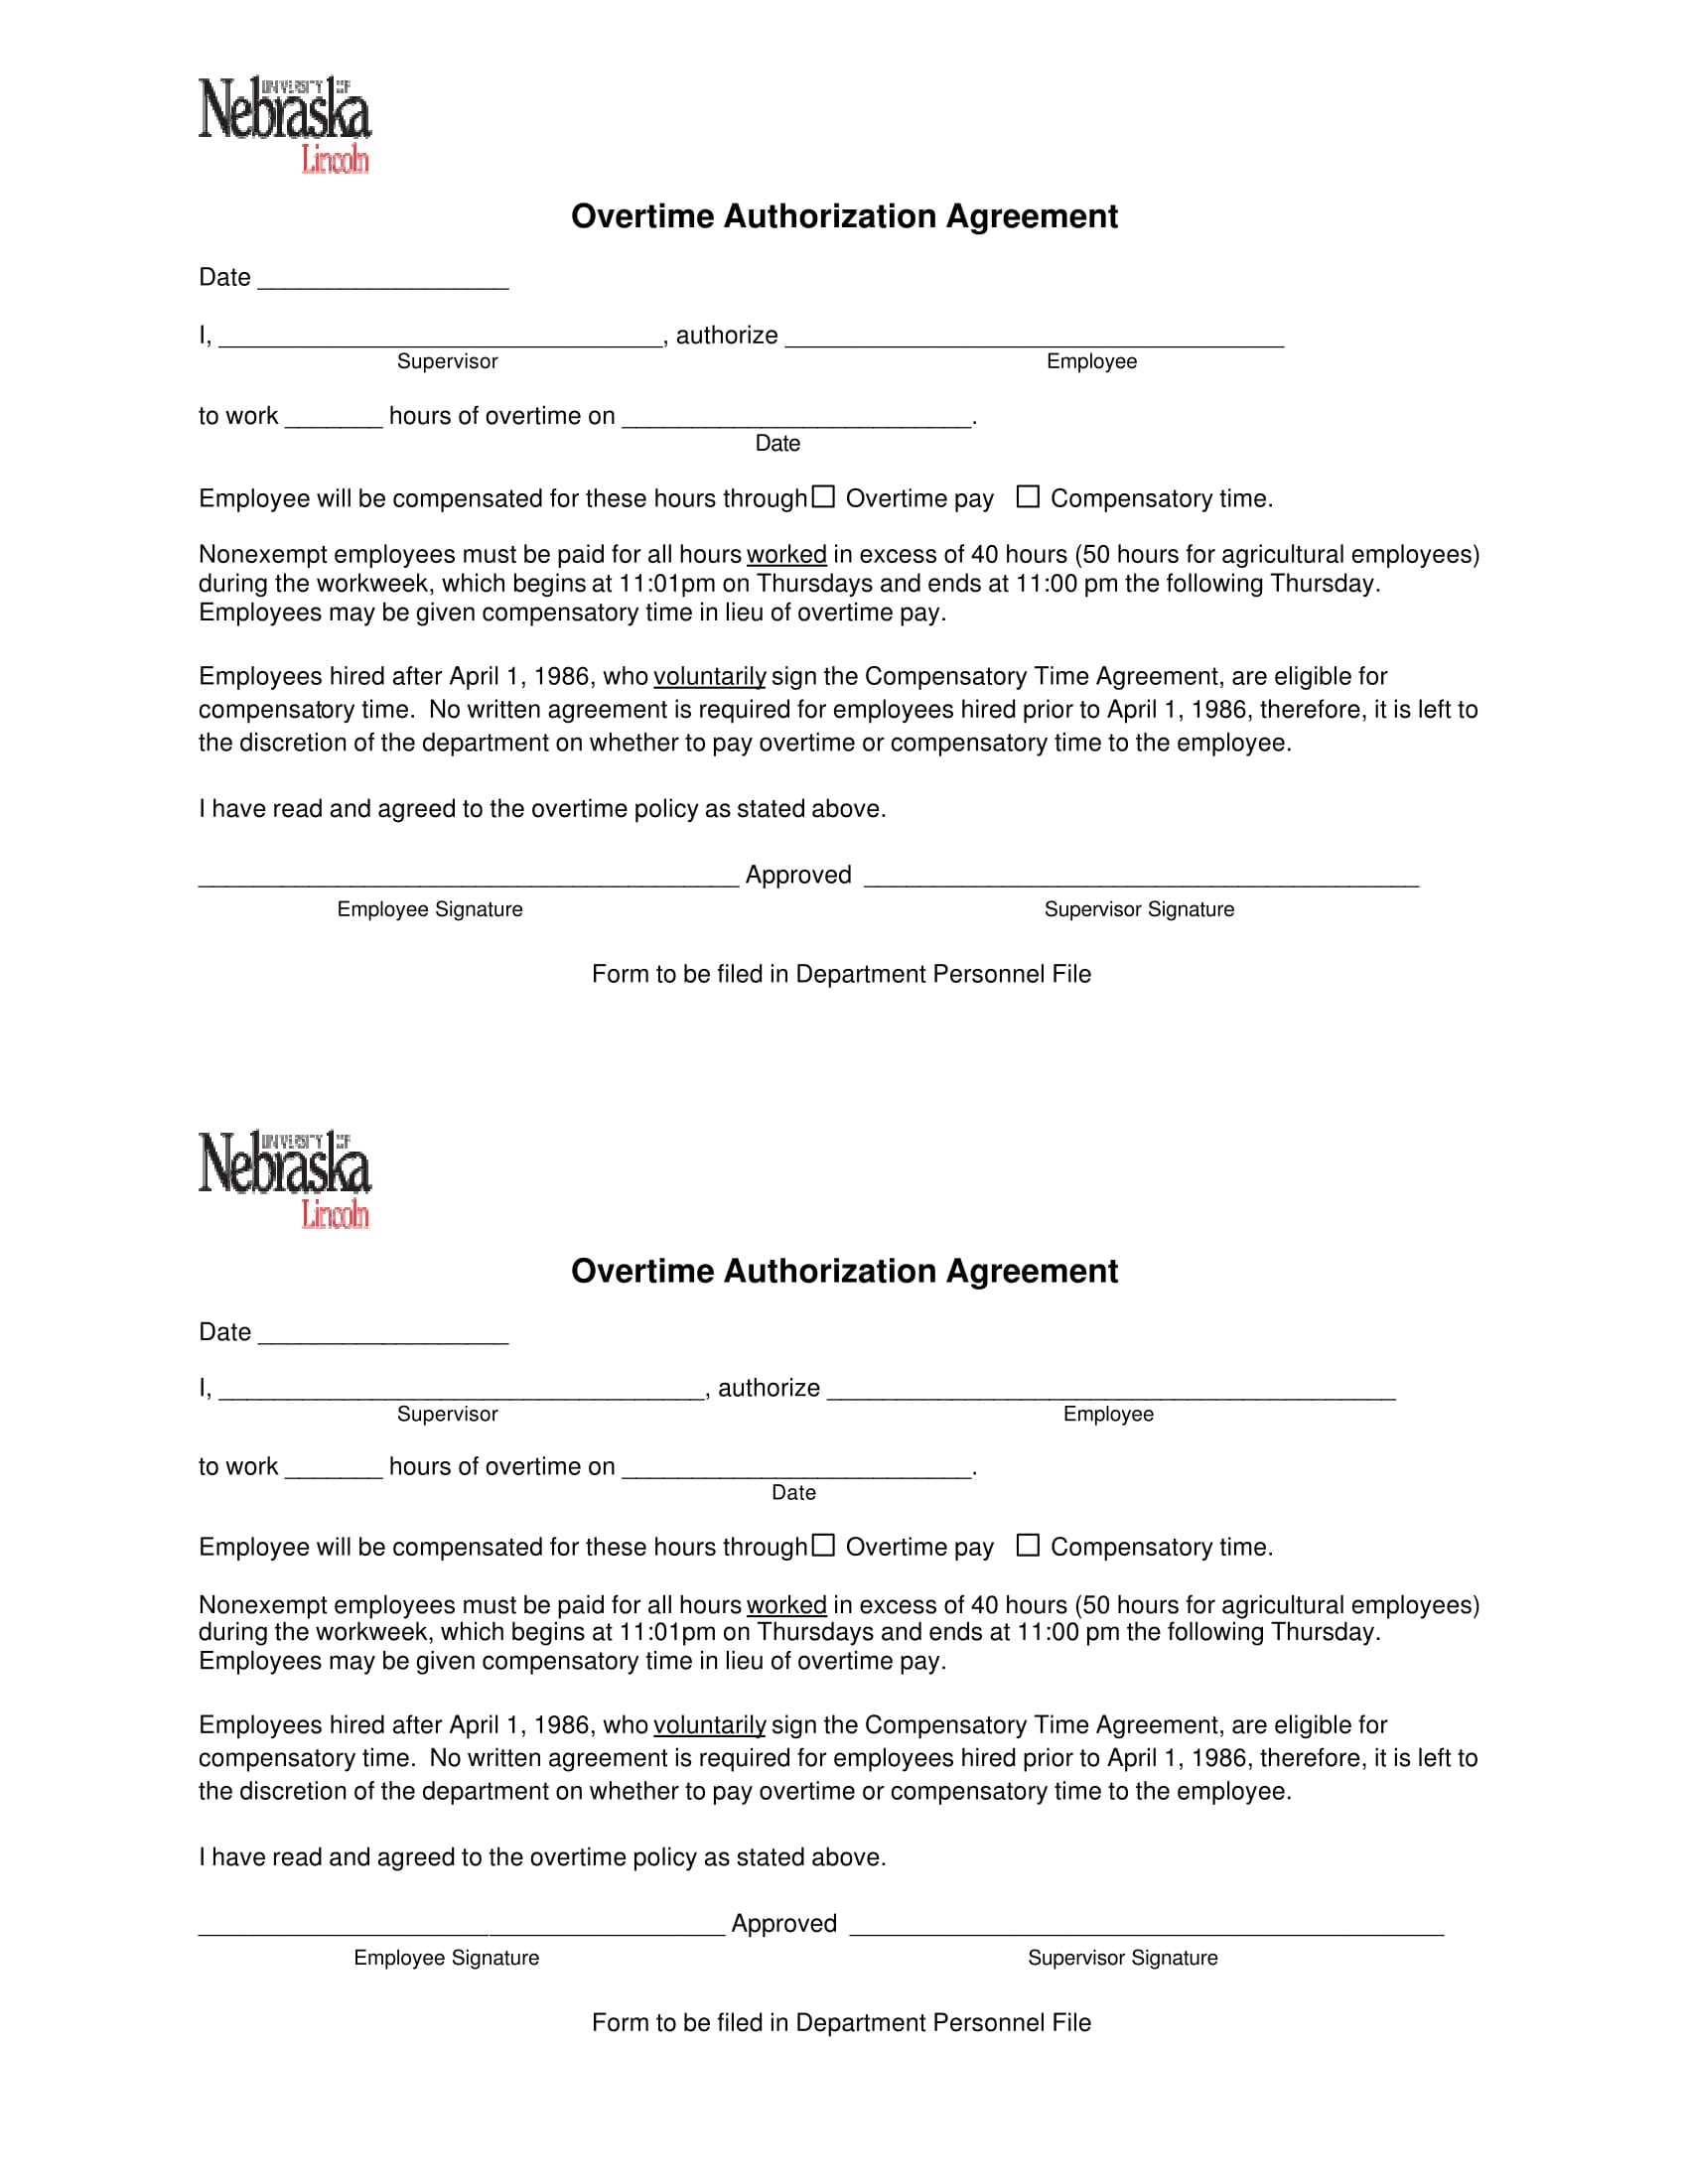 overtime authorization agreement form 1